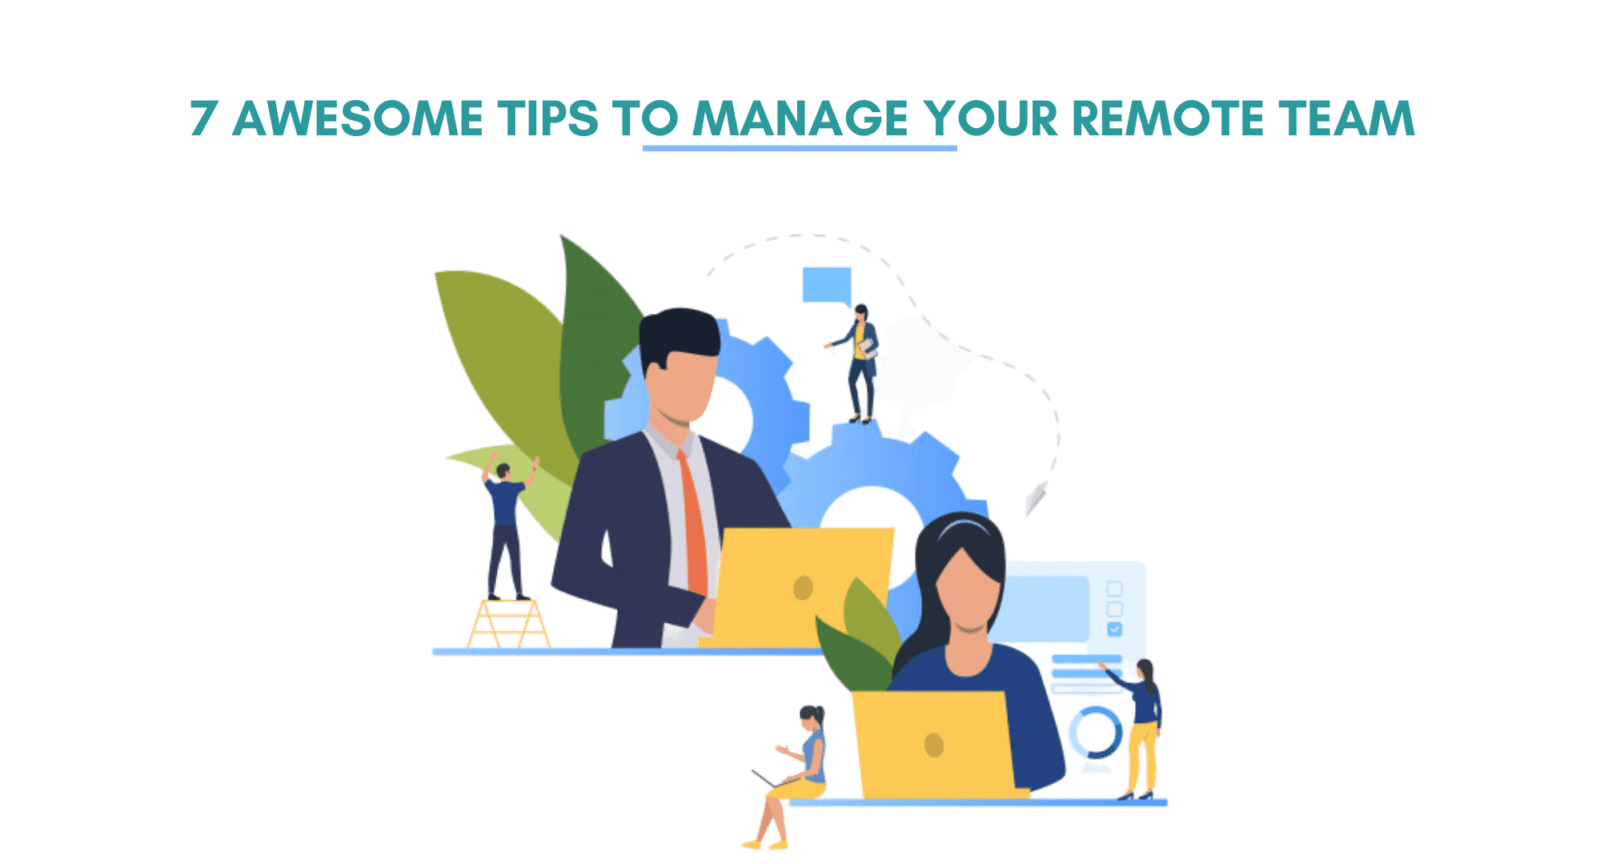 Top tips for managing remote teams. 7 awesome tips to manage remote teams. 7 Ways to Effectively Manage Your Remote Team. 7 tips for managing remote employees. How to manage remote employees